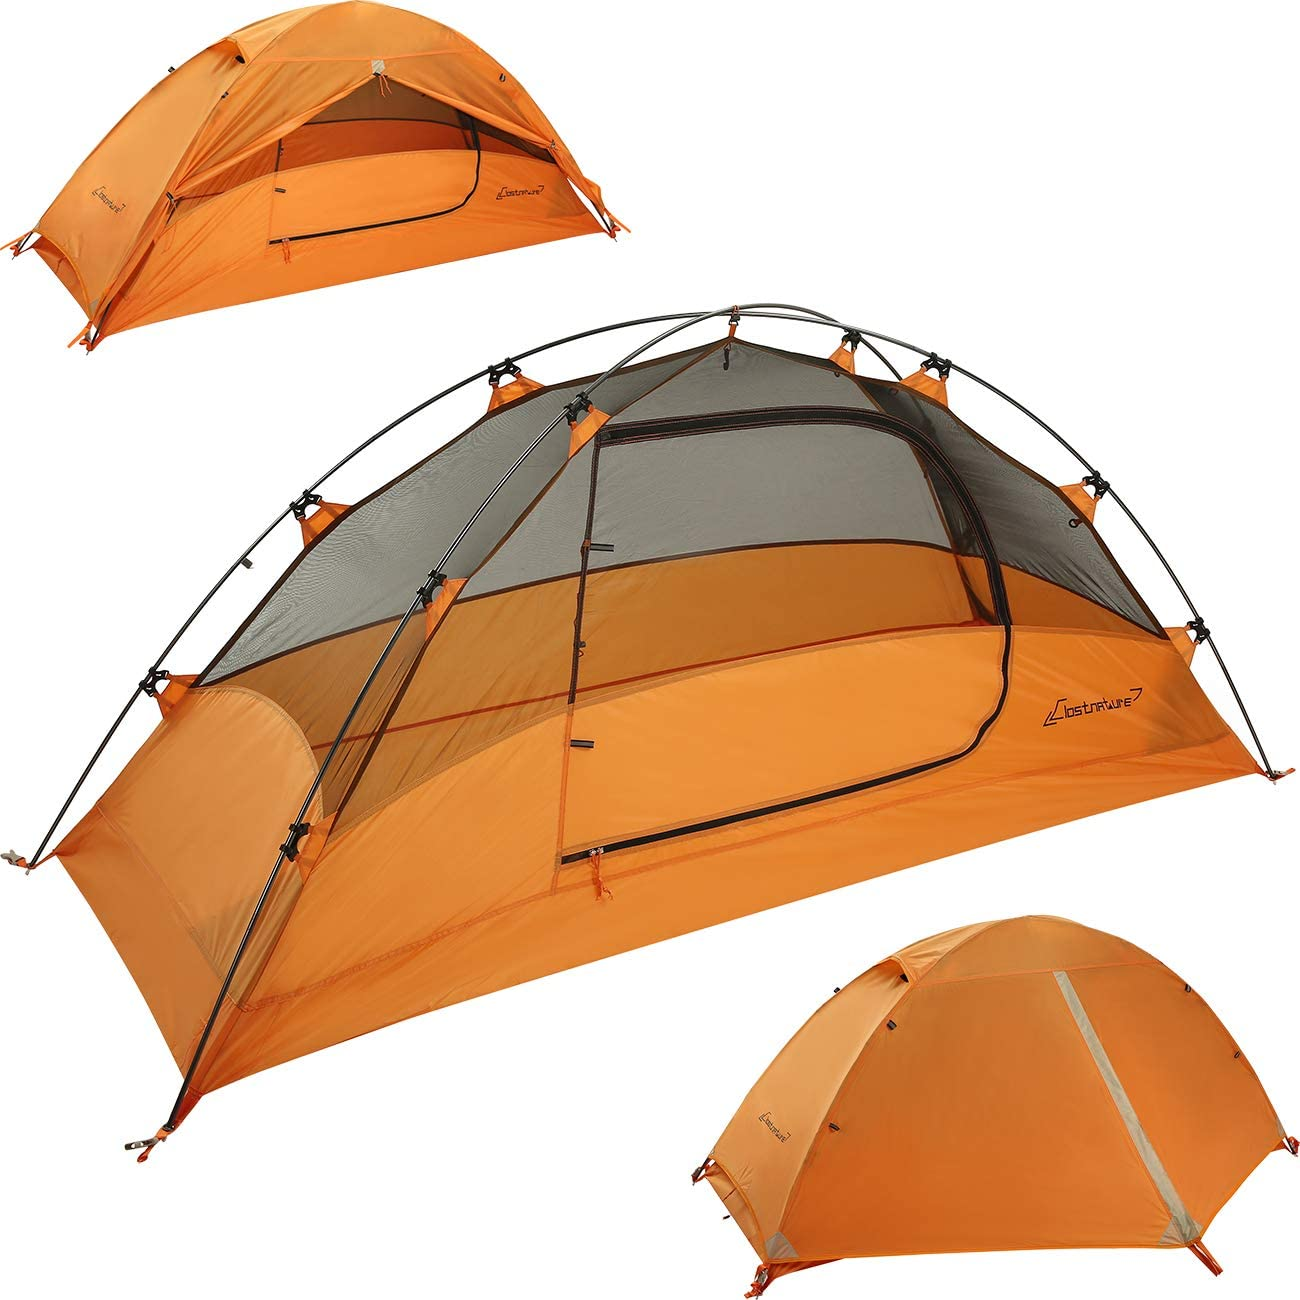 Clostnature 3 Season Lightweight Backpacking Tent